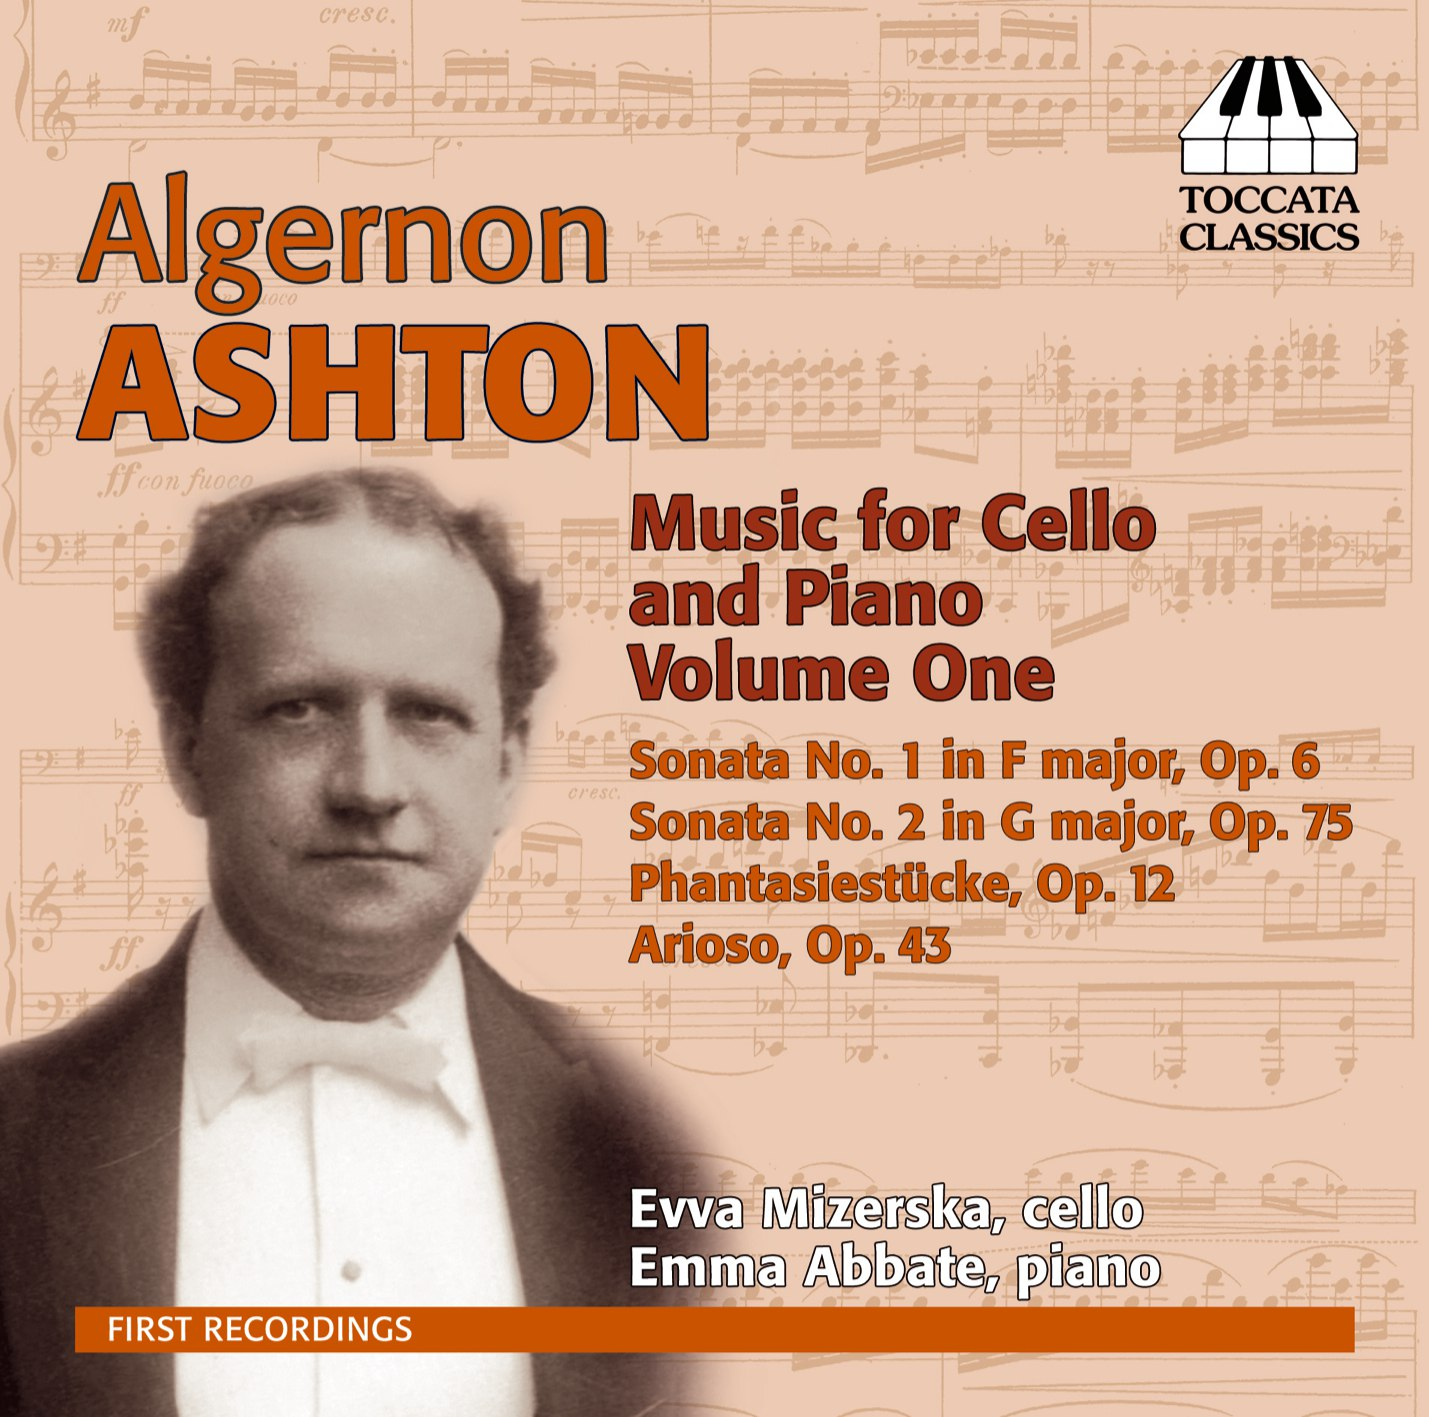 Algernon Ashton: Music for Cello and Piano